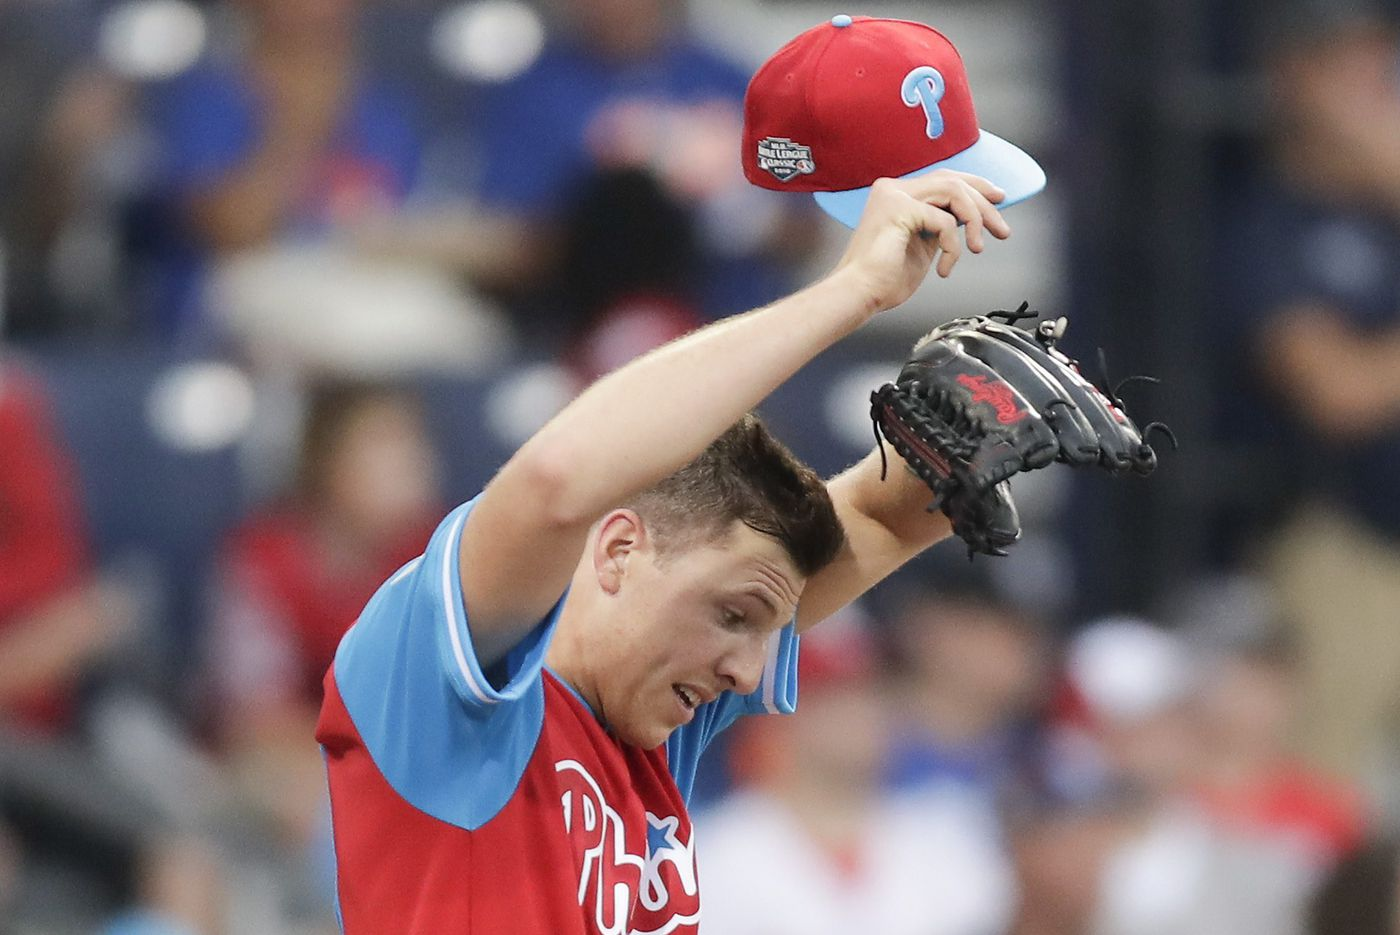 Phillies wrap up memorable day with rough loss to Mets in Little League Classic